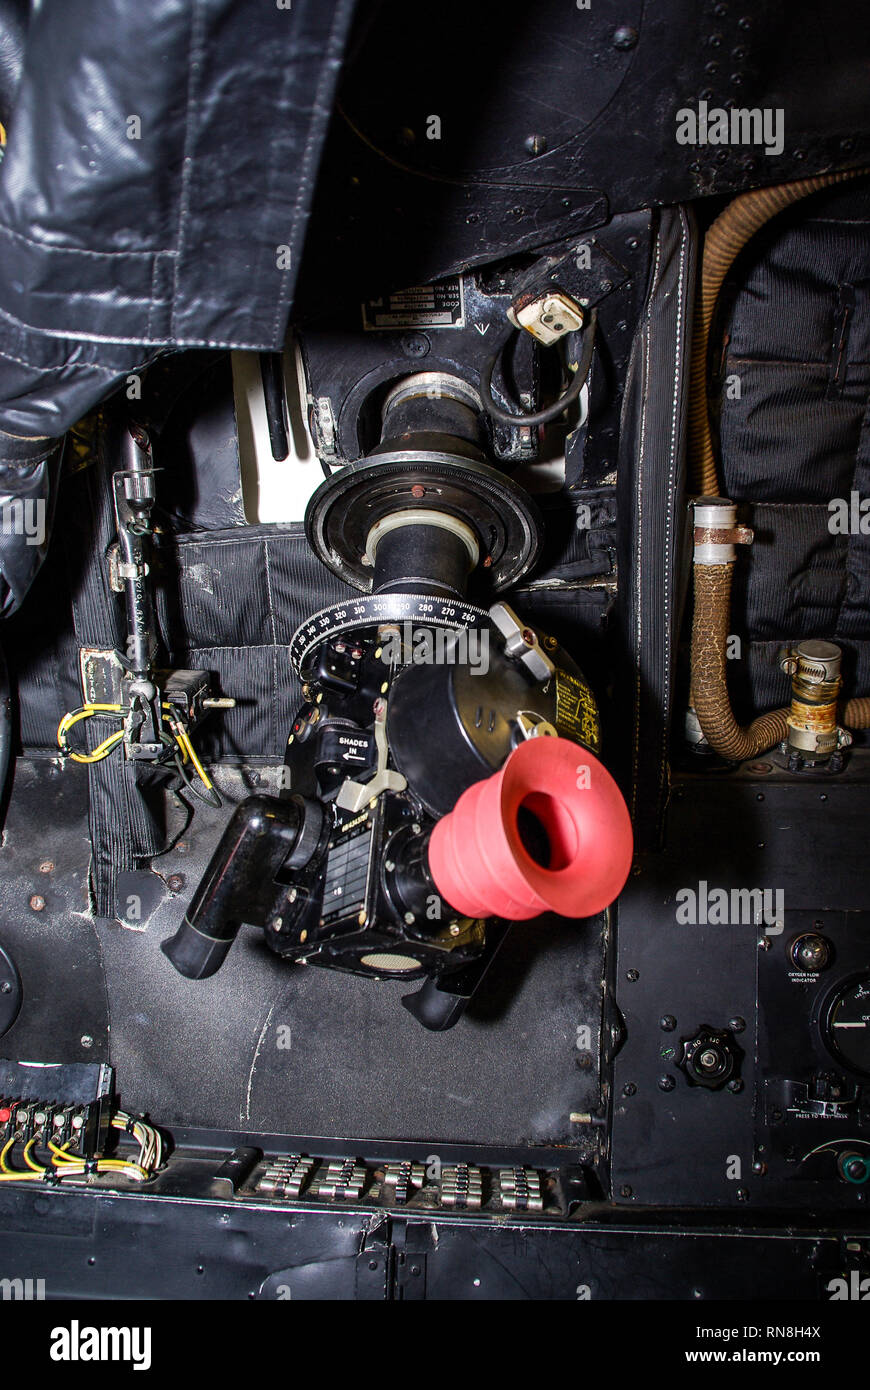 Sextant in an RAF Avro Vulcan B2 Cold War nuclear bomber. Standby backup in case of instrument failure. Used for astronavigation, celestial navigating - Stock Image